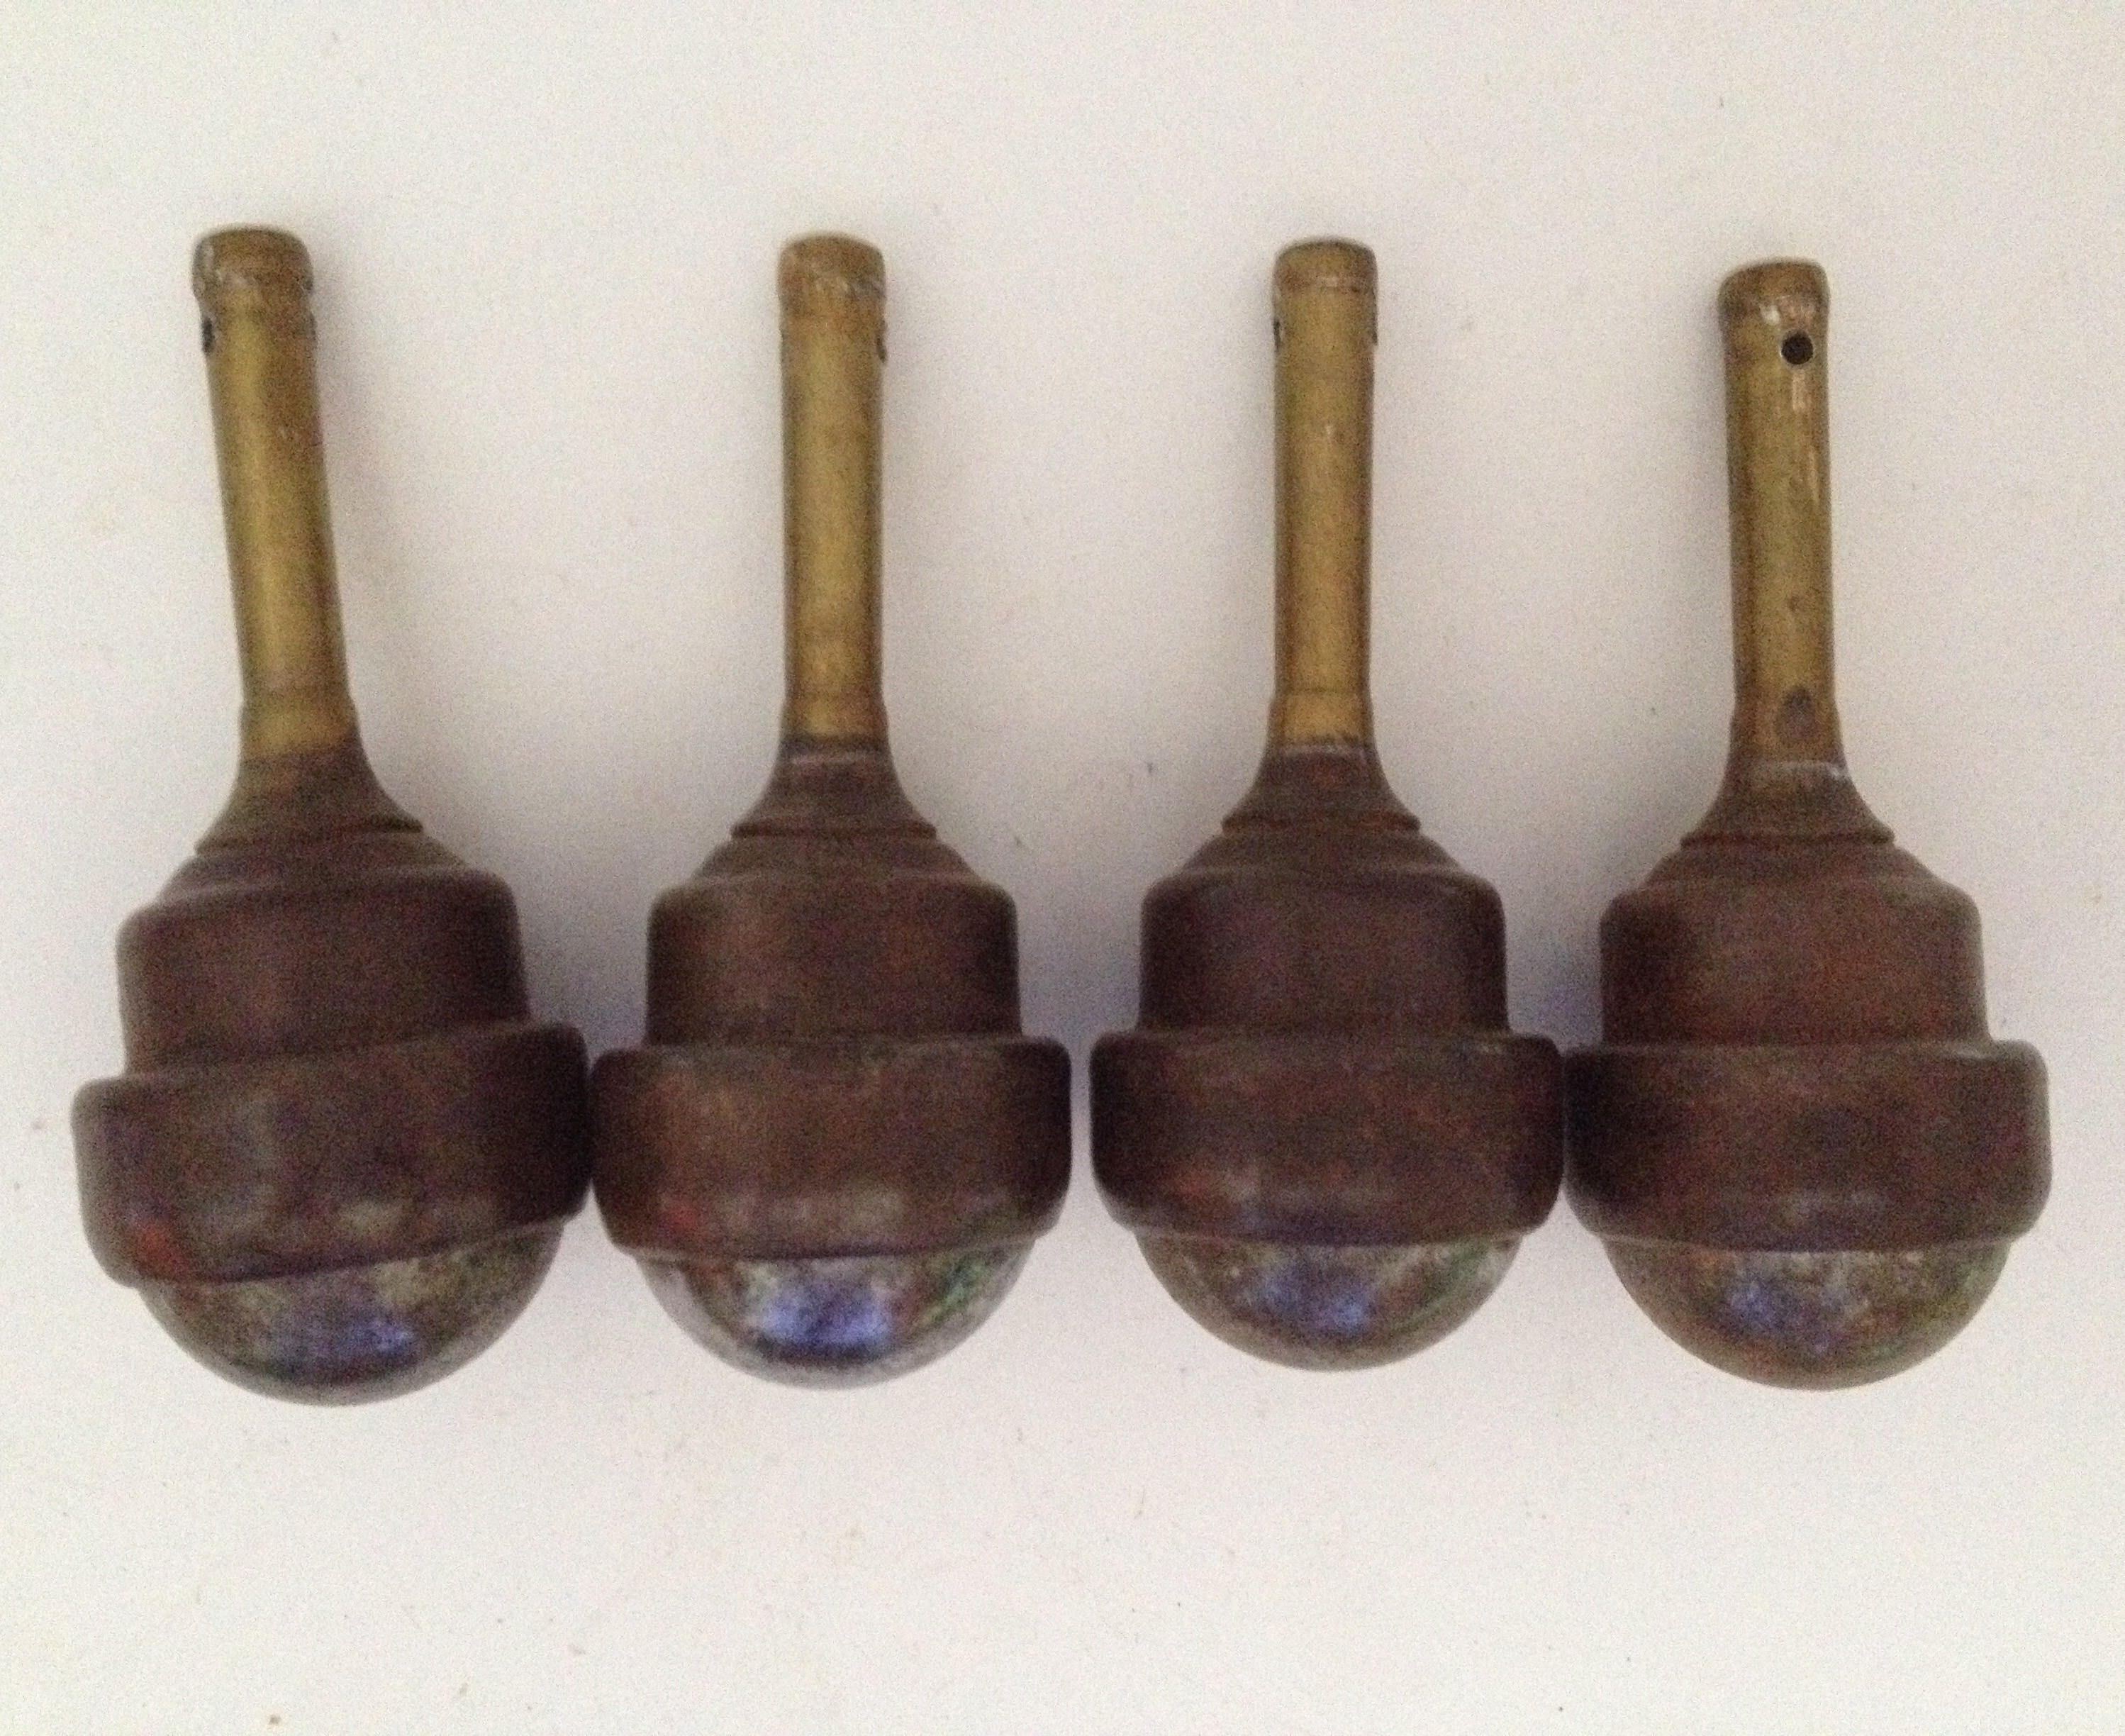 Ball Casters Vintage 1 1 2 Inch Stem Caster Wheels Set Of 4 Furniture Peg Wheel Lot By Aroundtheclock On Etsy Vintage Hardware Ball Casters Stem Casters